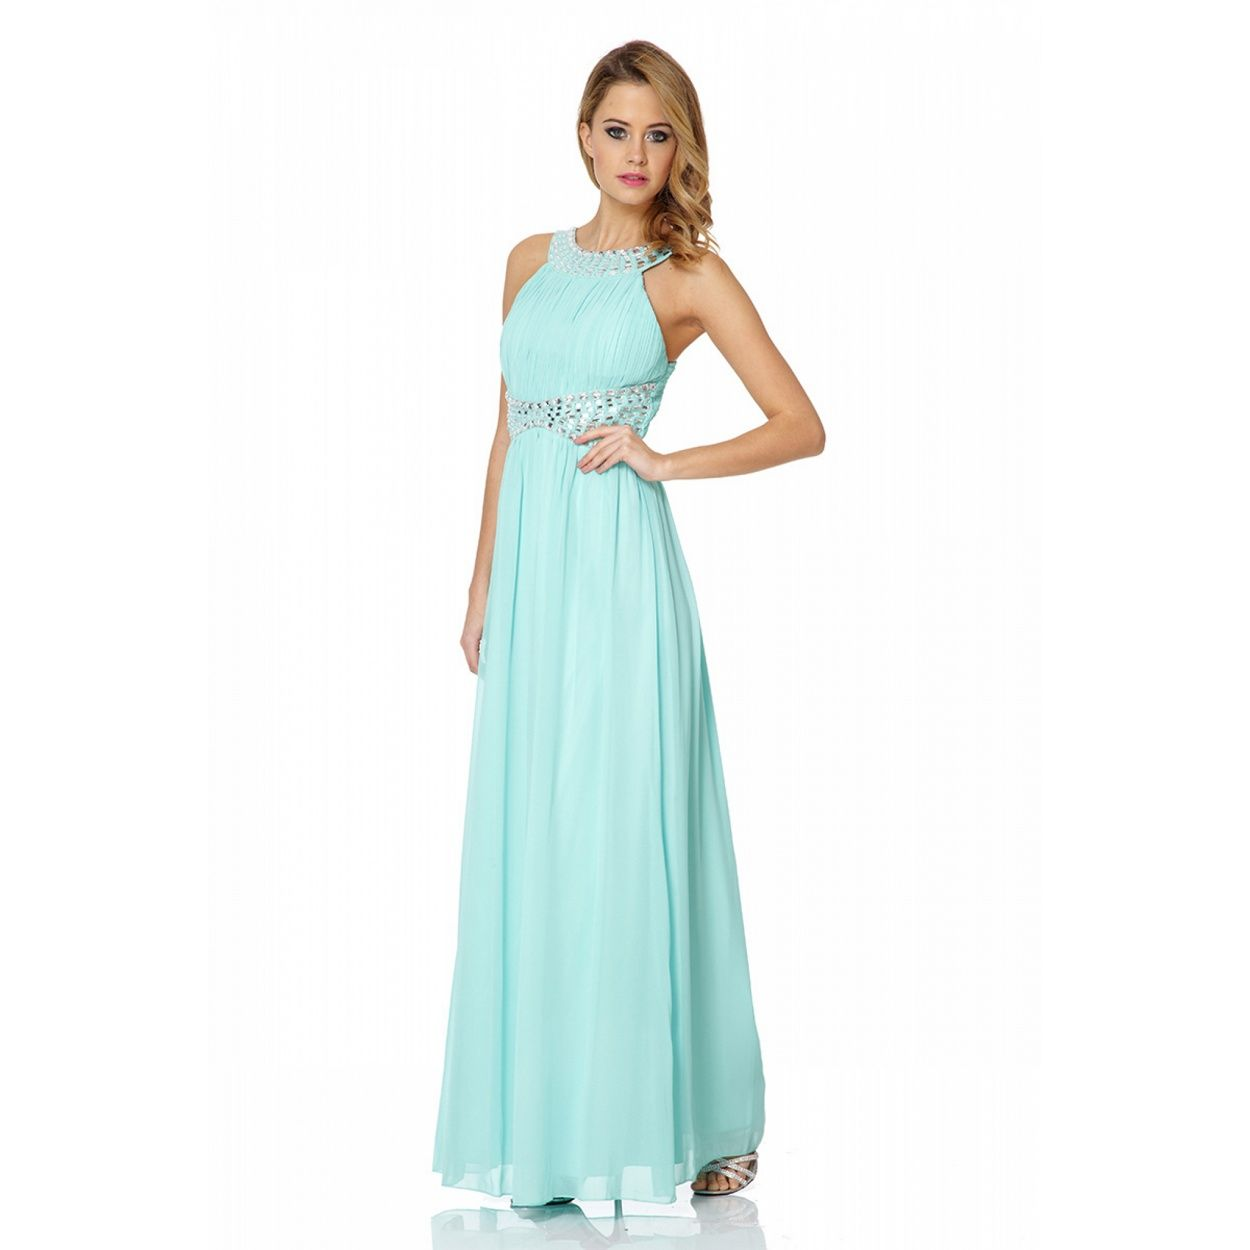 Awesome Prom Dresses In Debenhams Images - Wedding Ideas - memiocall.com